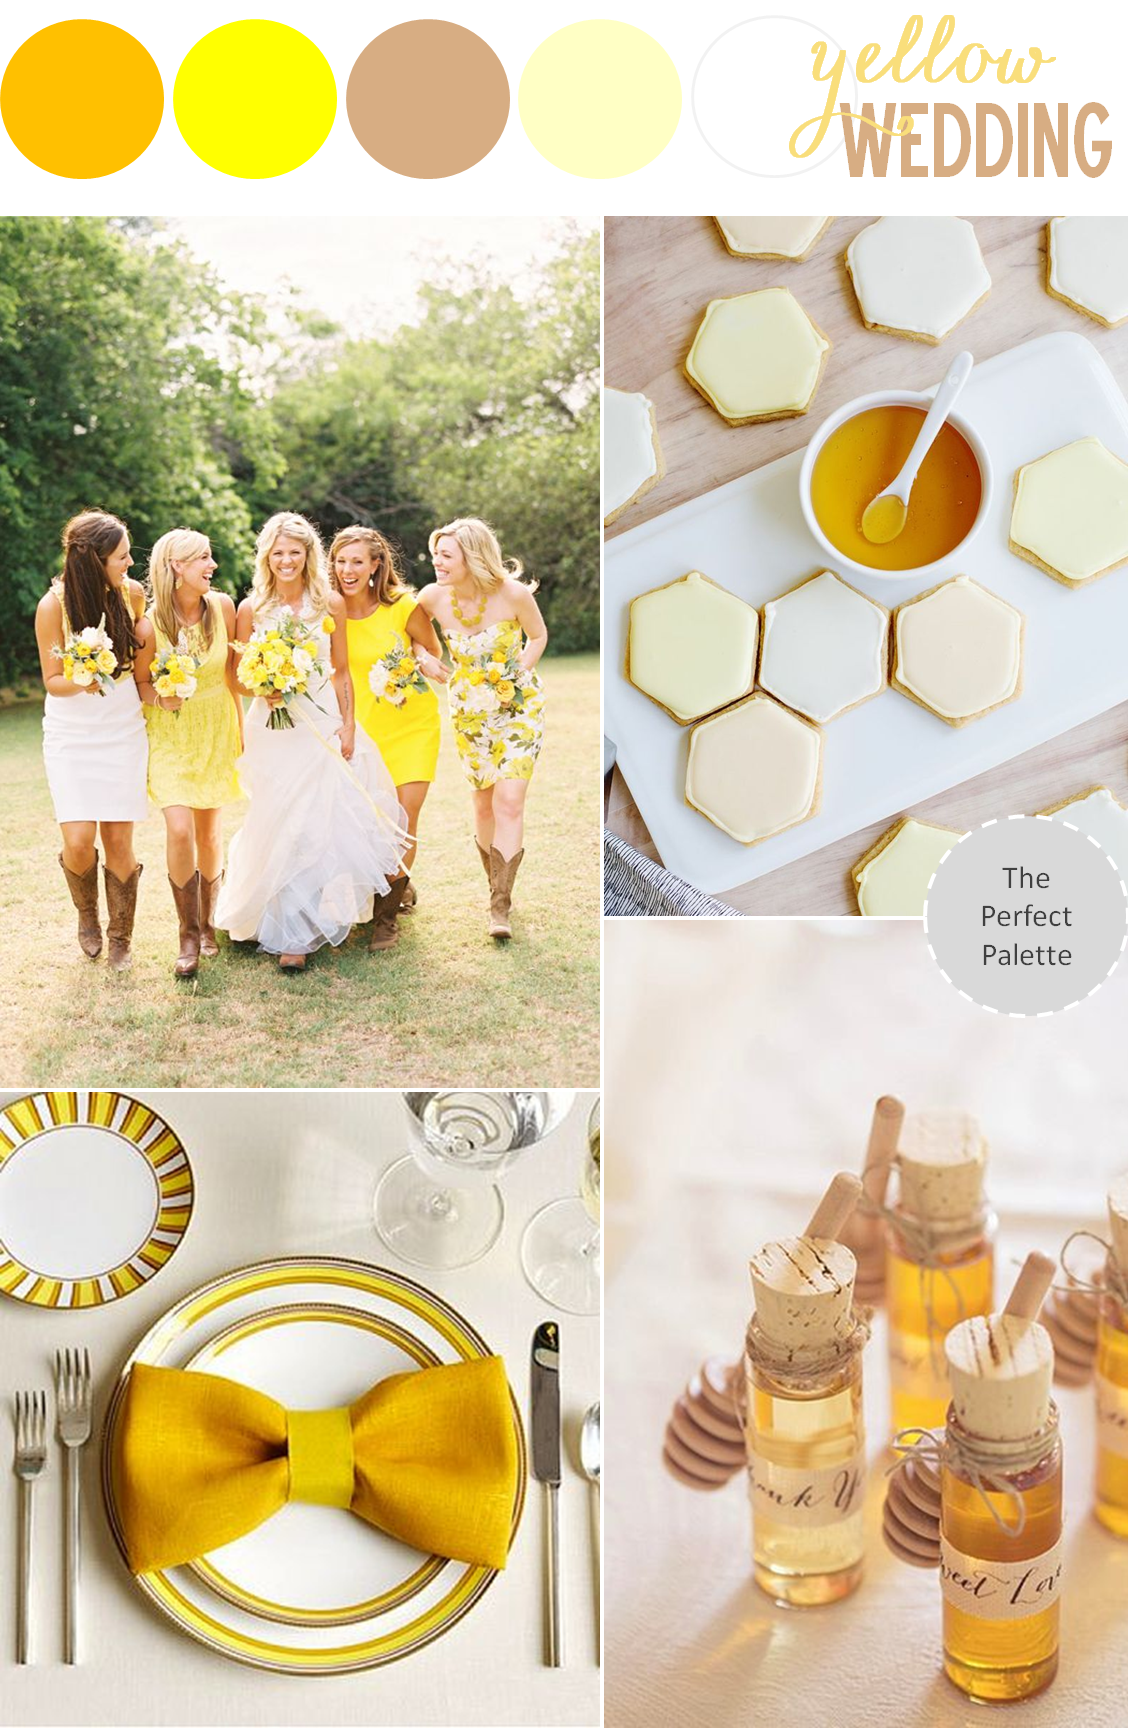 A Southern Soirée: Yellow Wedding Ideas